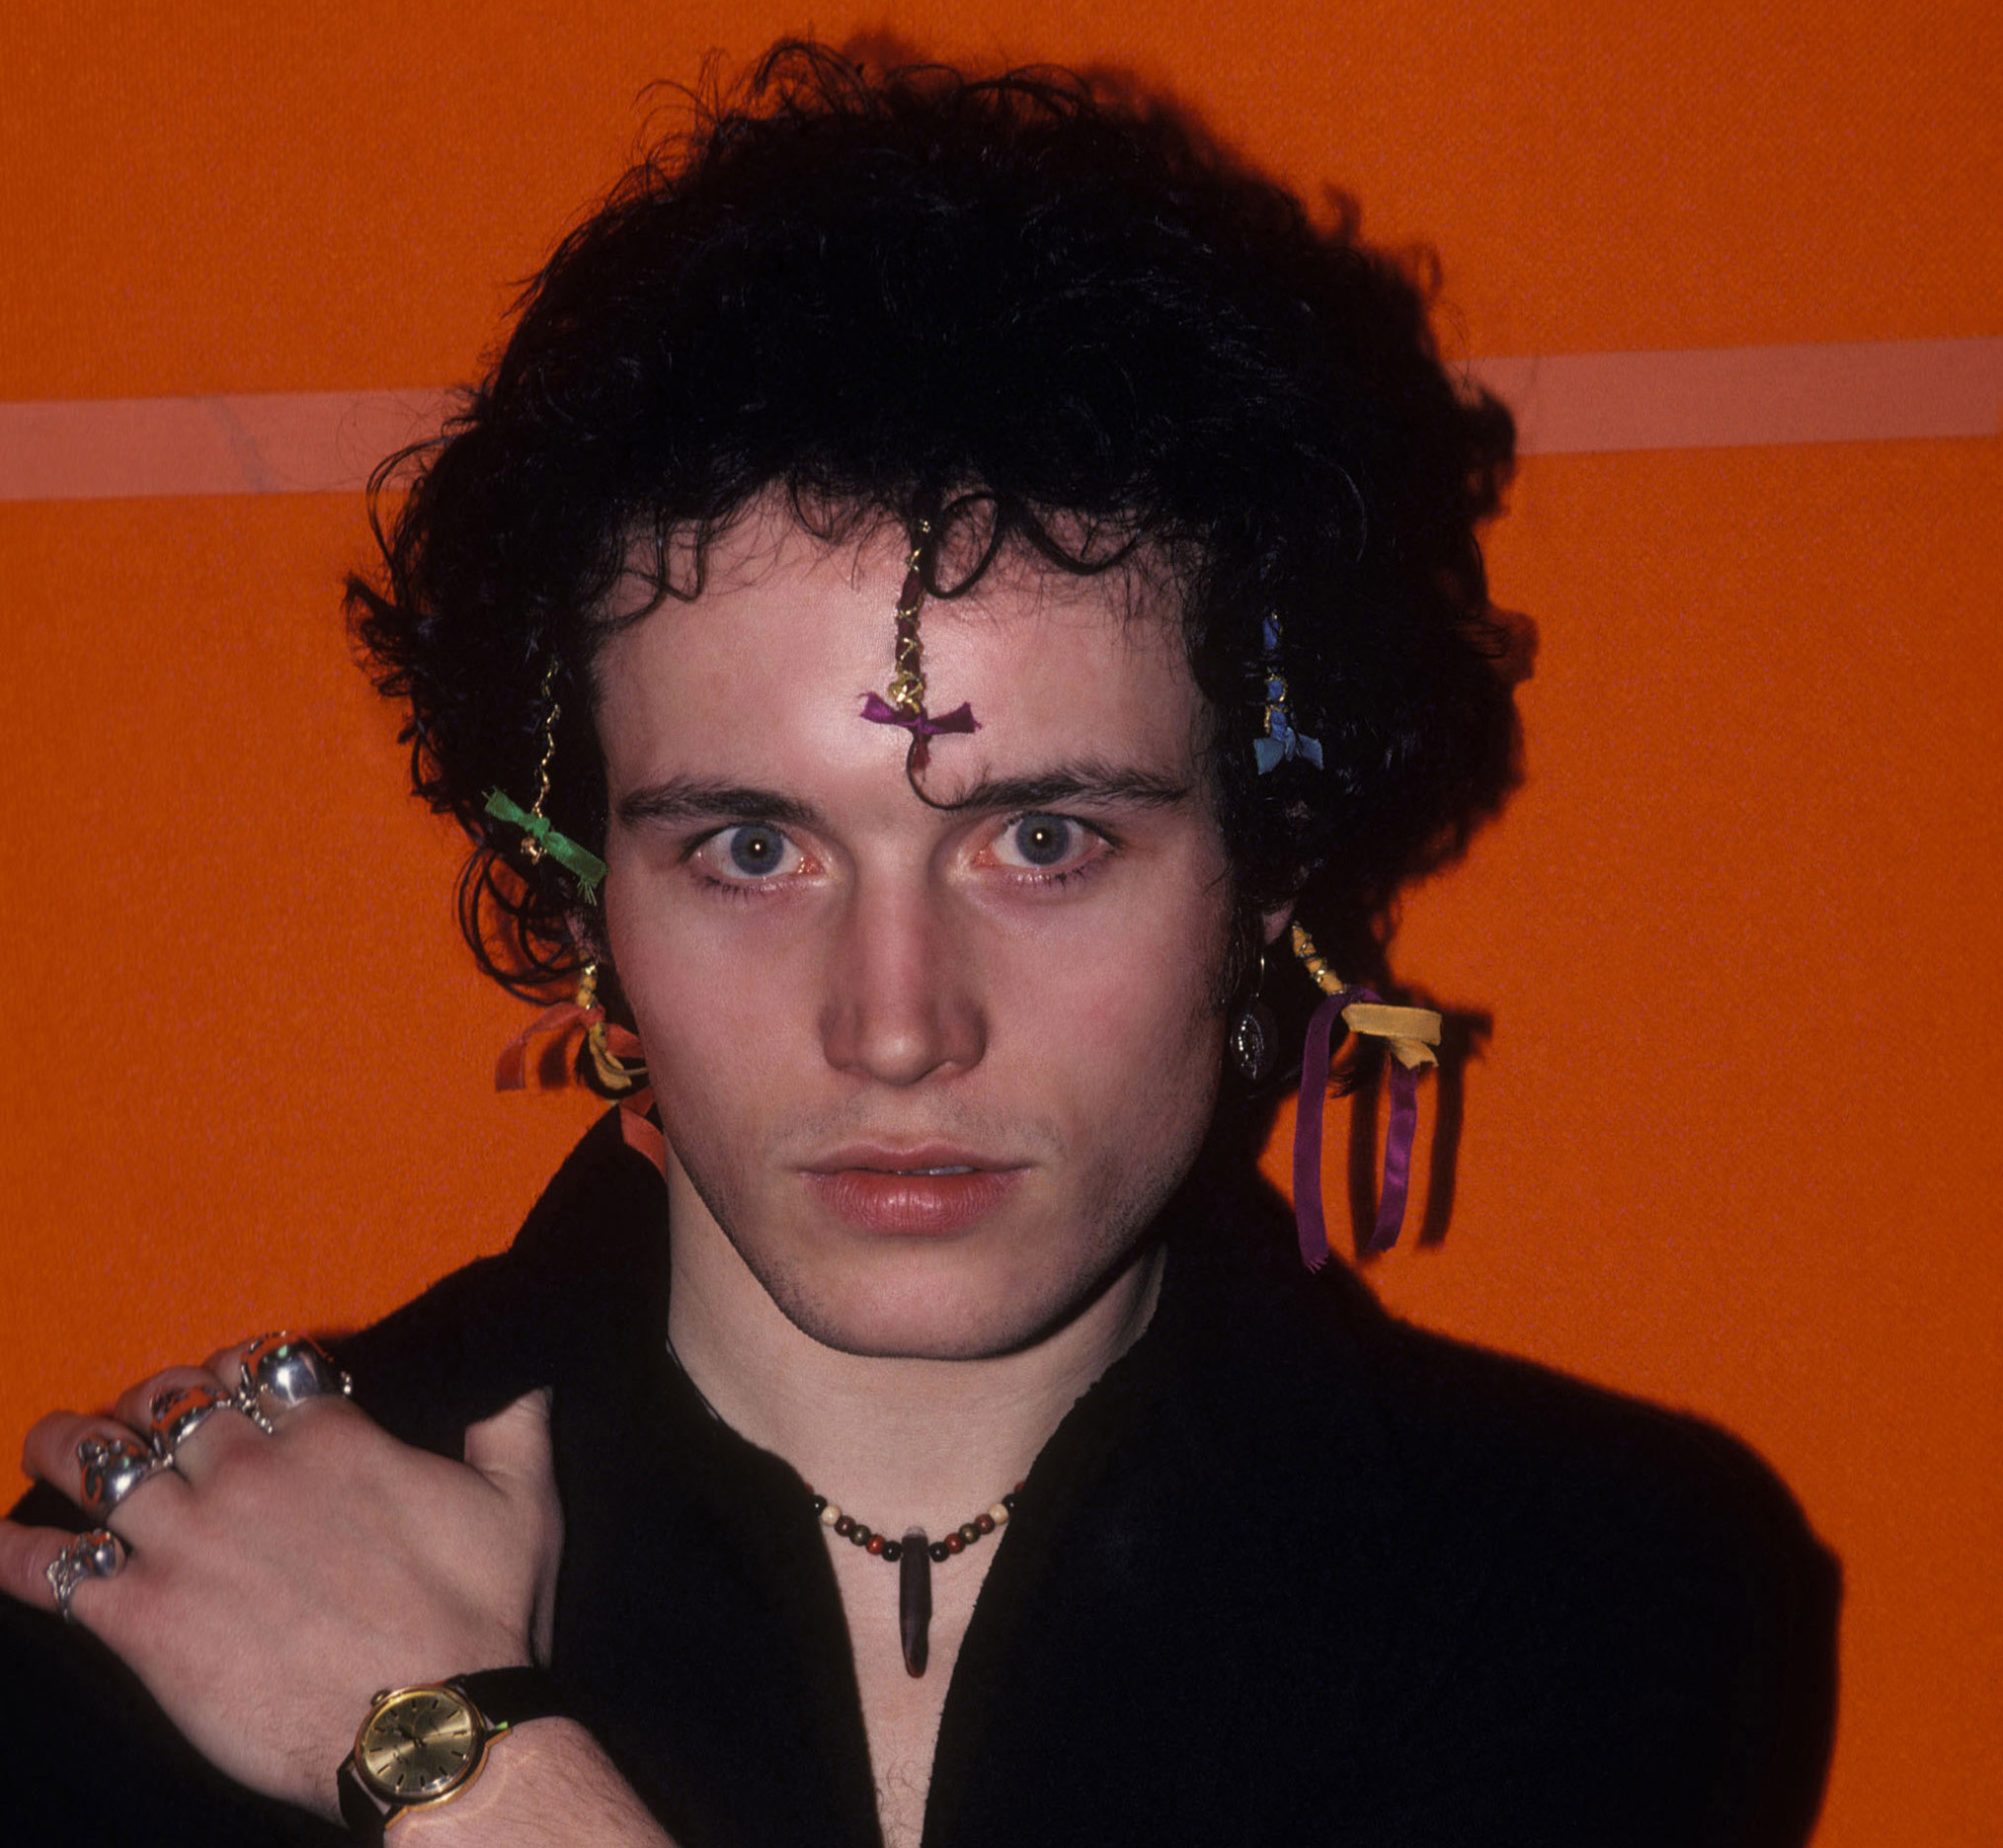 Adam Ant in 1978 [photo: Brad Elterman/BuzzFoto/FilmMagic]